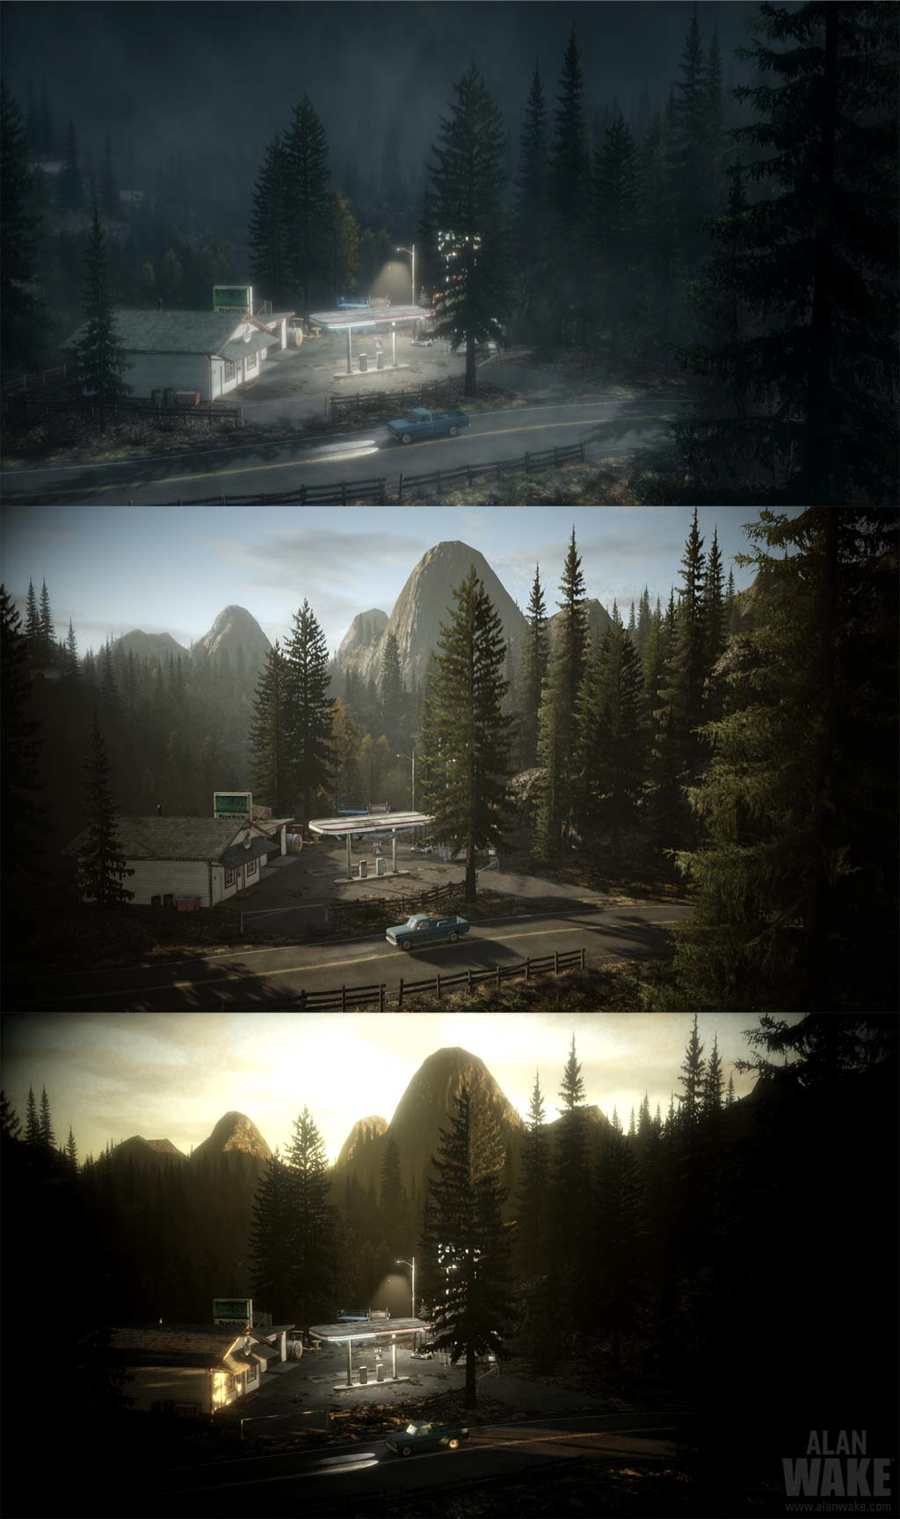 Alan Wake gas station day to night